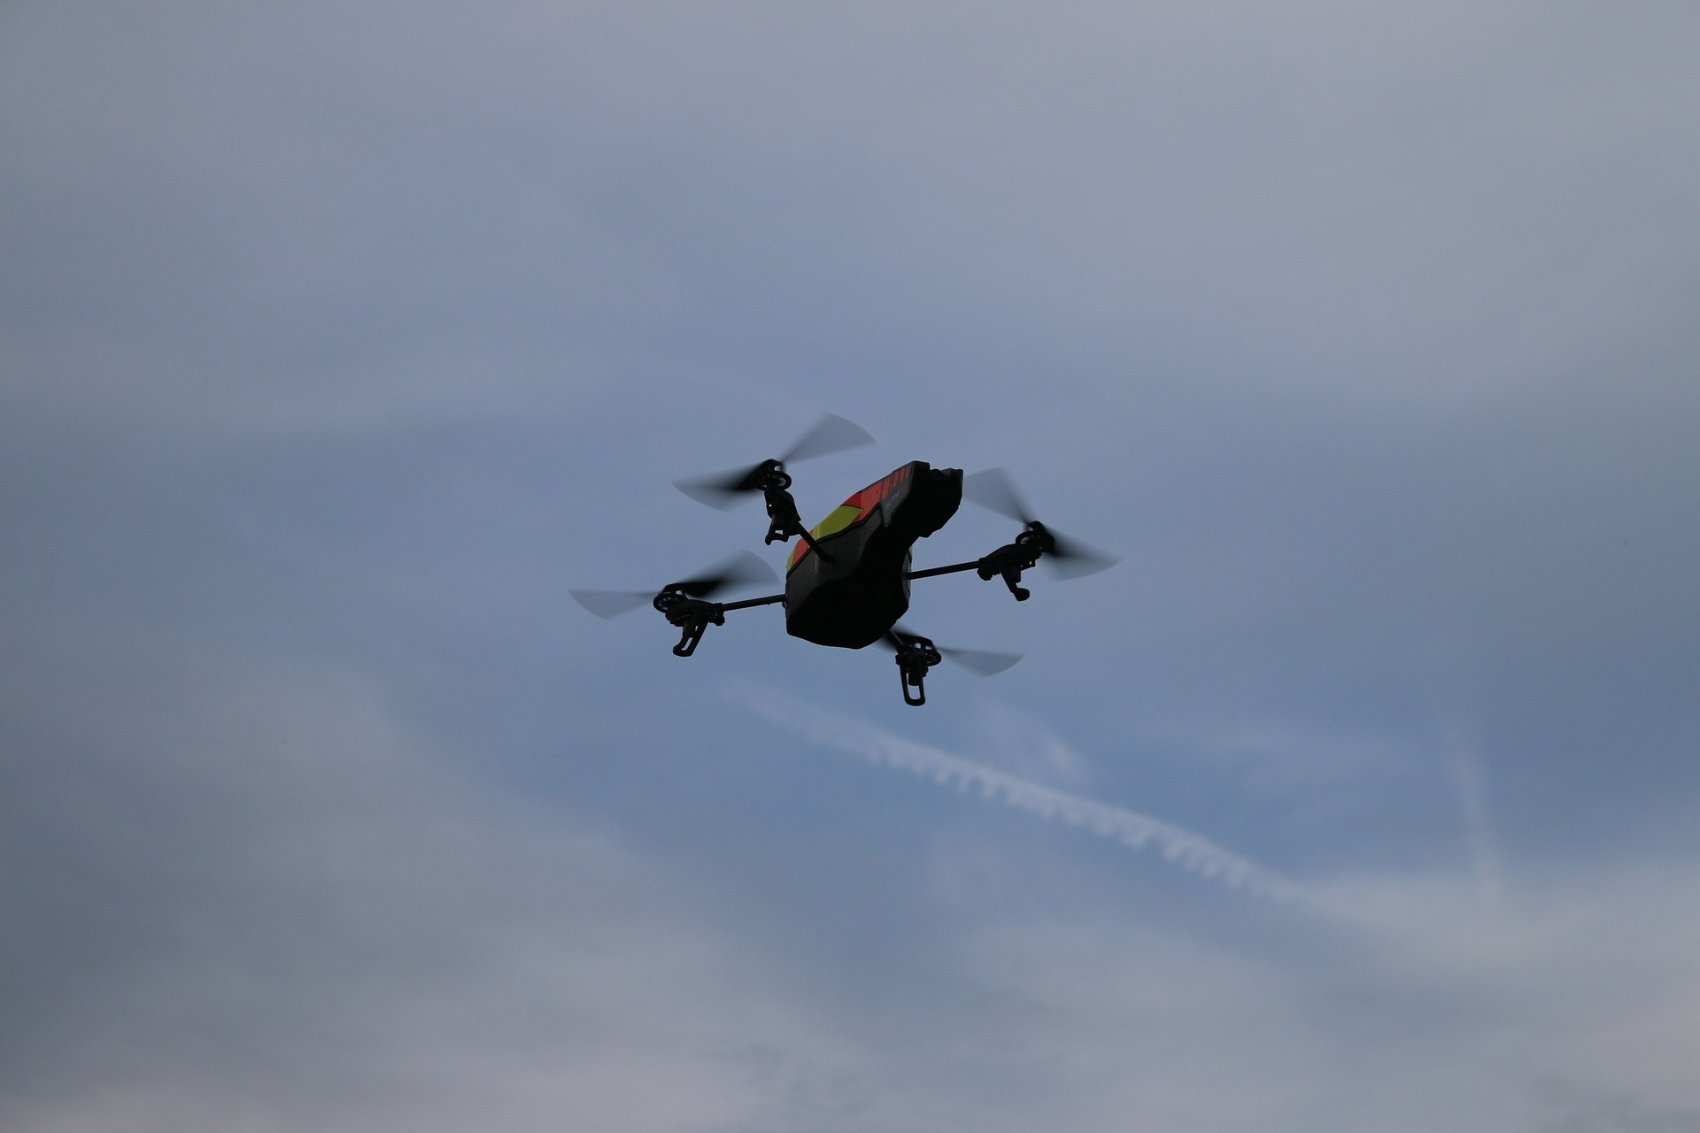 Drone Hovering - Image by andri333